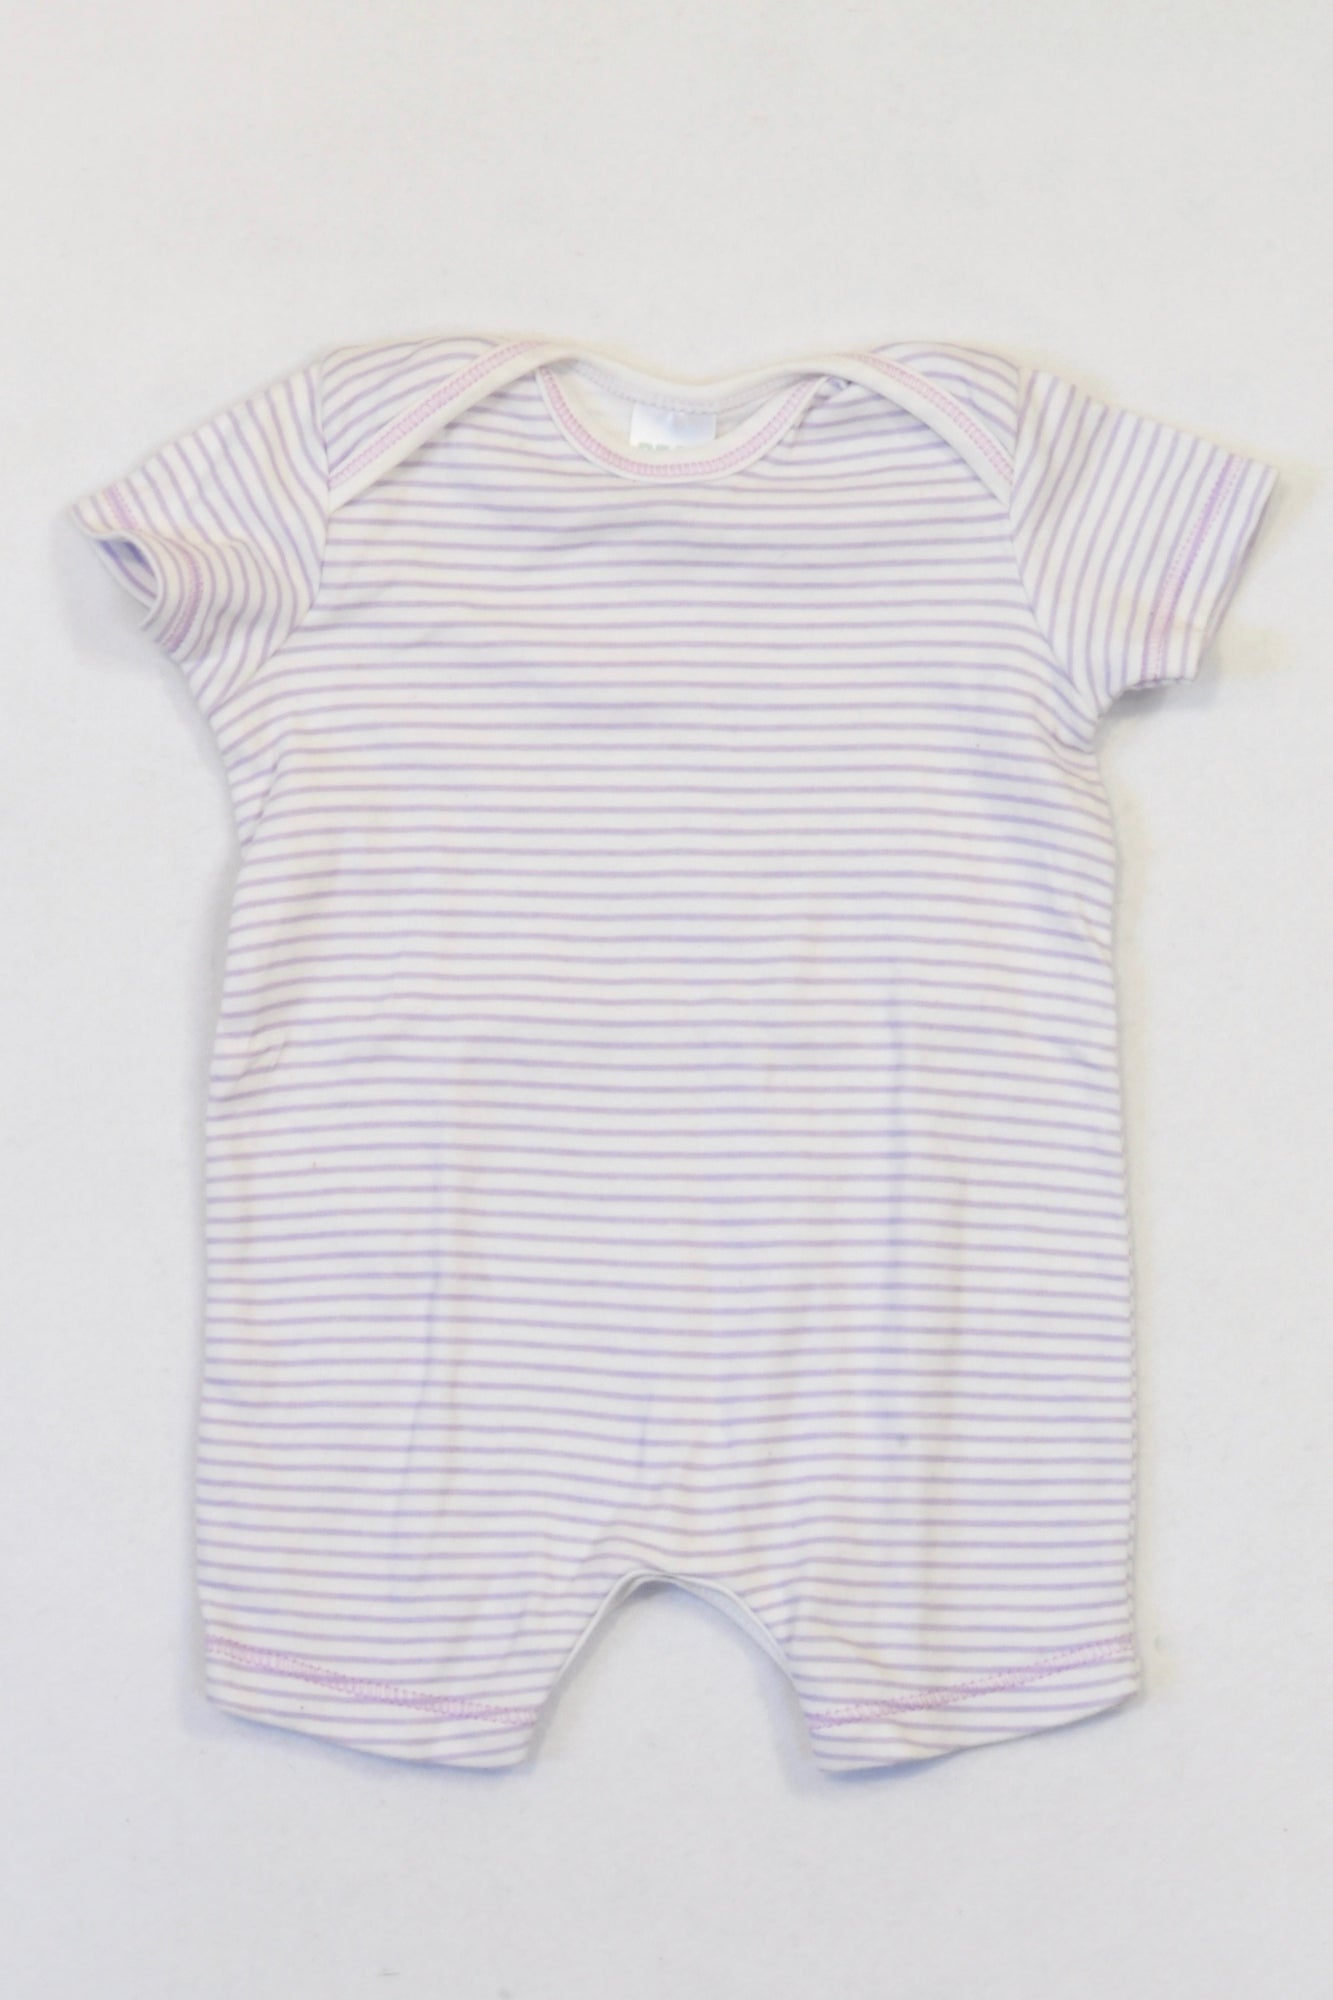 Pick 'n Pay Lilac & White Thin Stripe Romper Girls 3-6 months